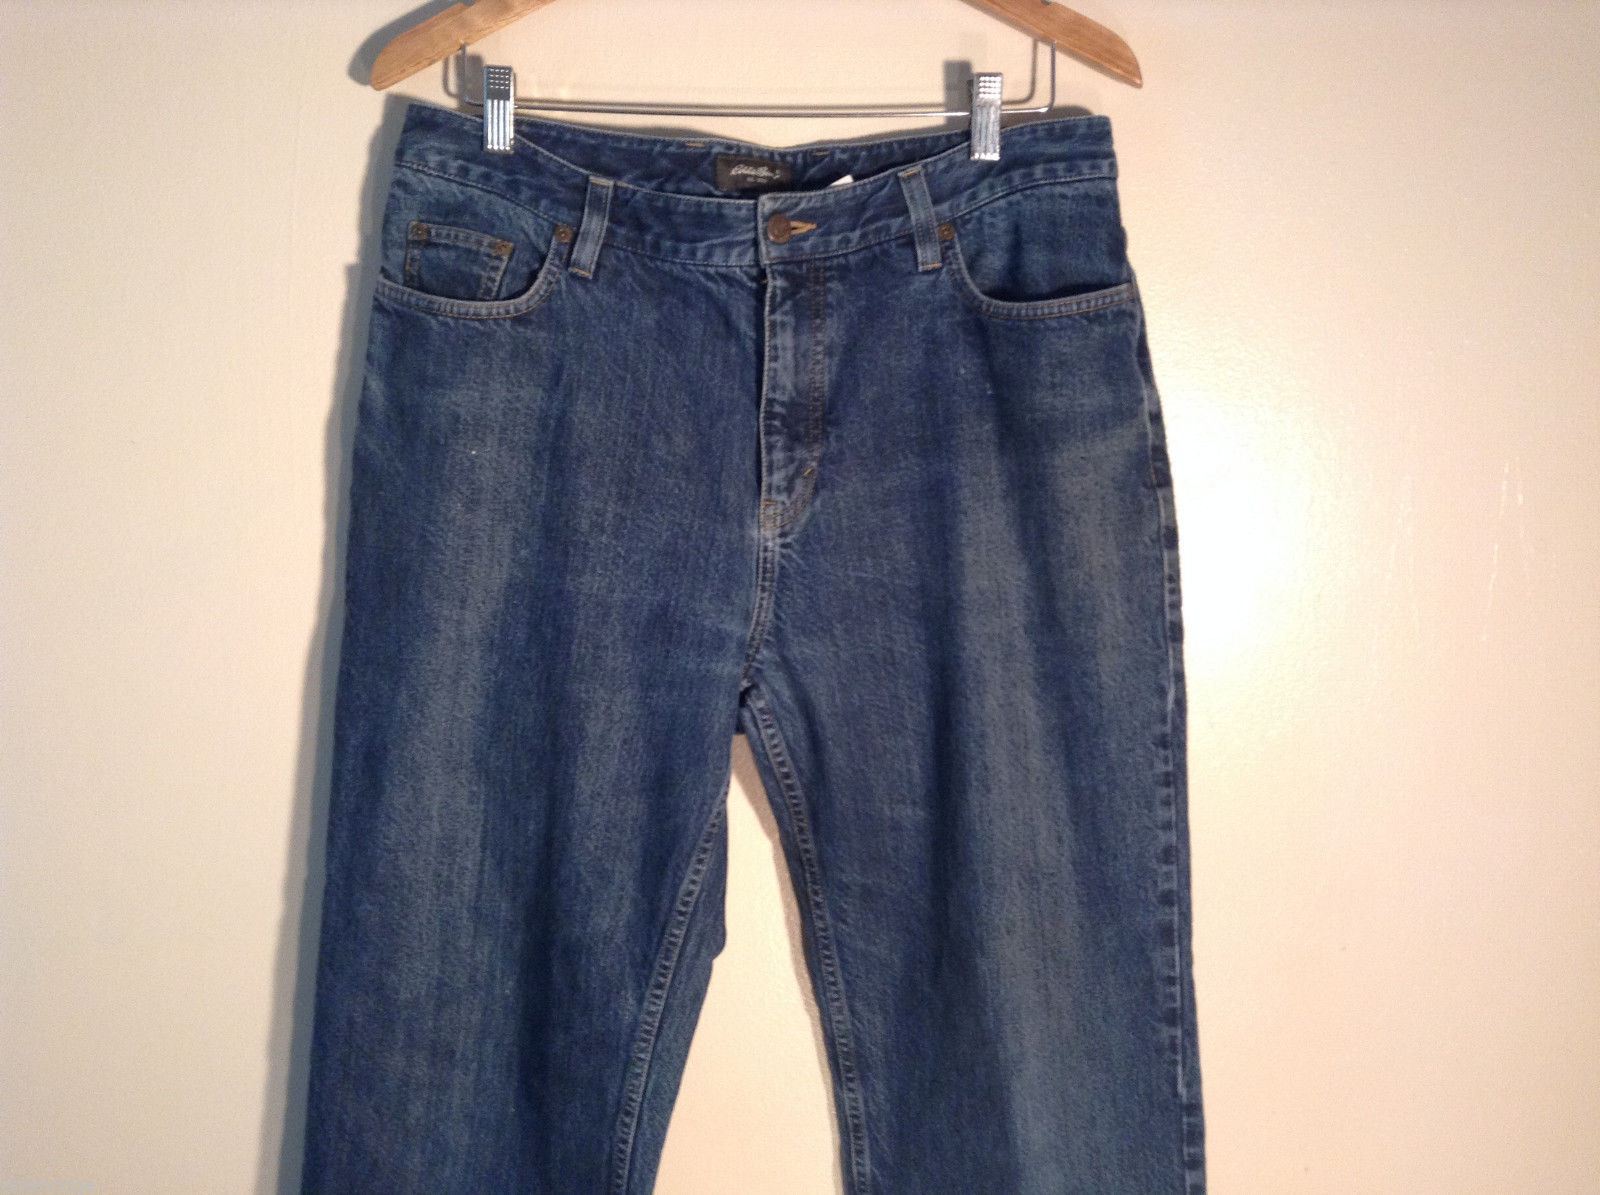 Womens Eddie Bauer Size 14 Natural Fit Jeans 100% cotton good condition